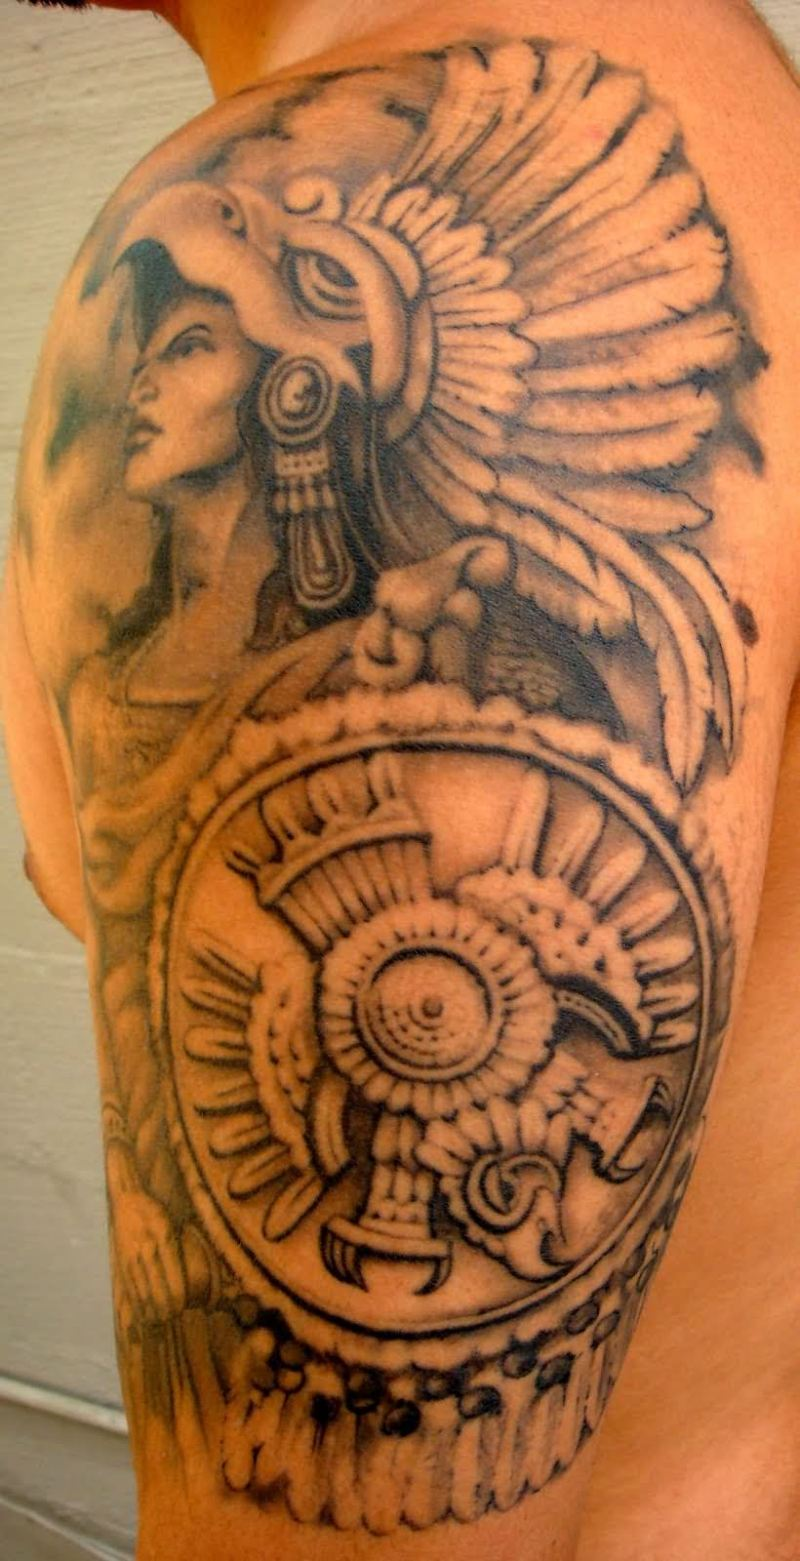 Different aztec tattoo design